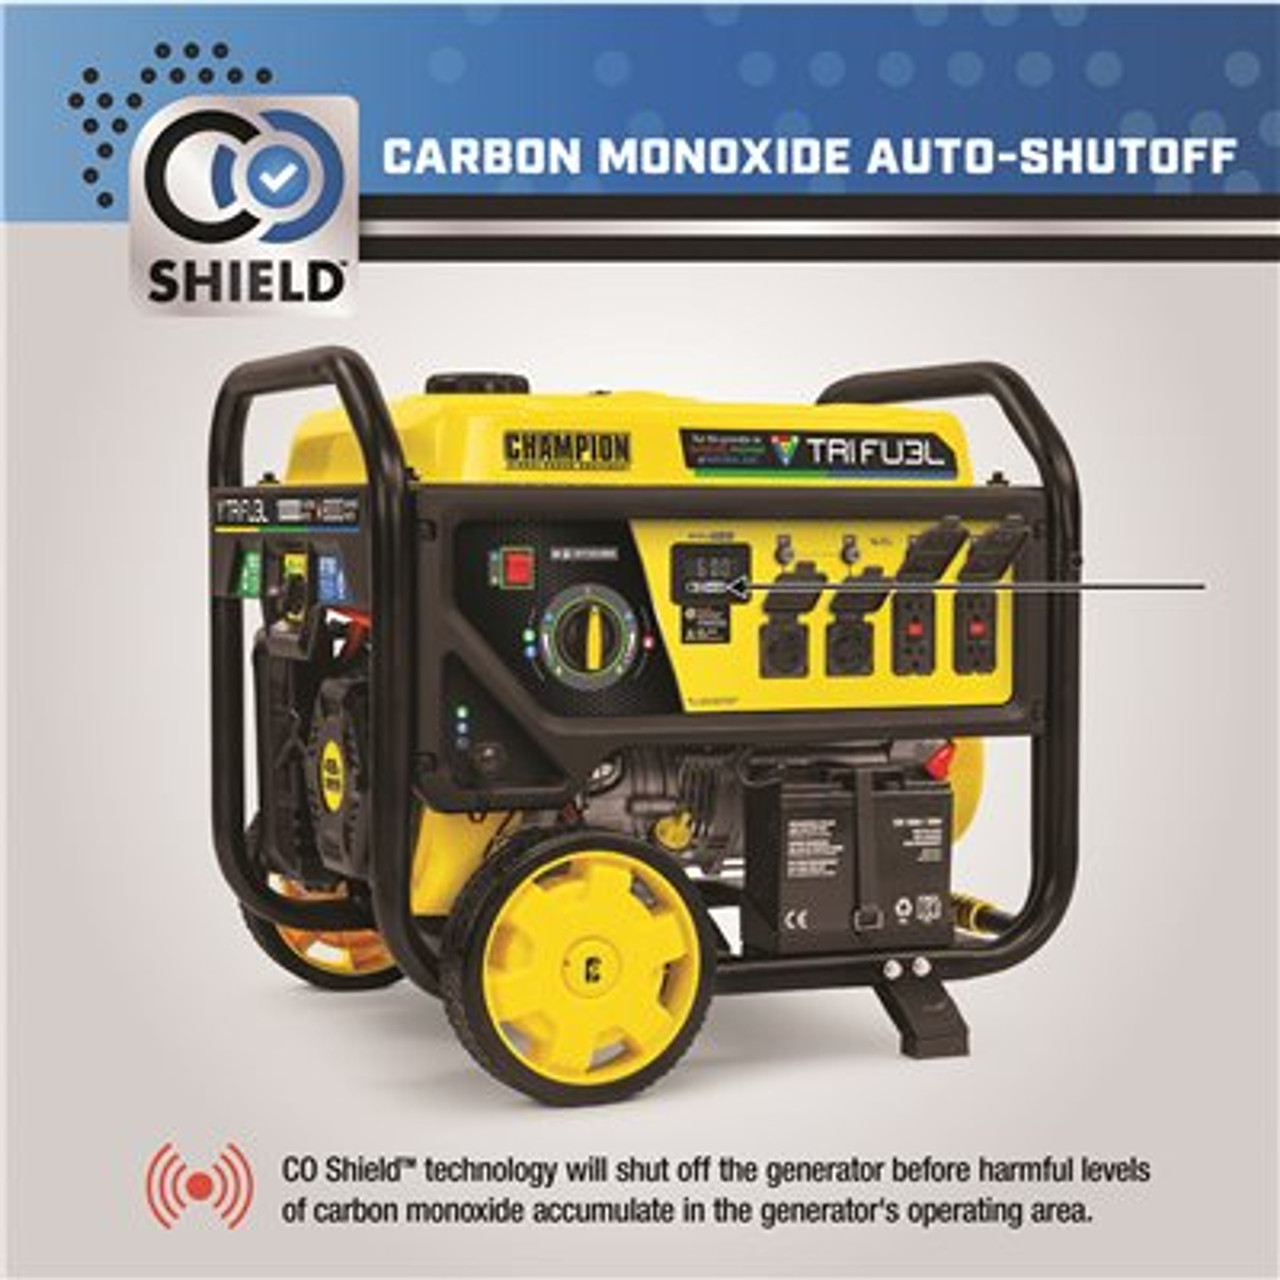 10,000/8,000-Watt Electric Start Gasoline Propane and Natural Gas Tri-Fuel Portable Generator with NG and LPG Hoses Item # 316786218 Champion Power Equipment Part # 100416 UPC Code 817198020617